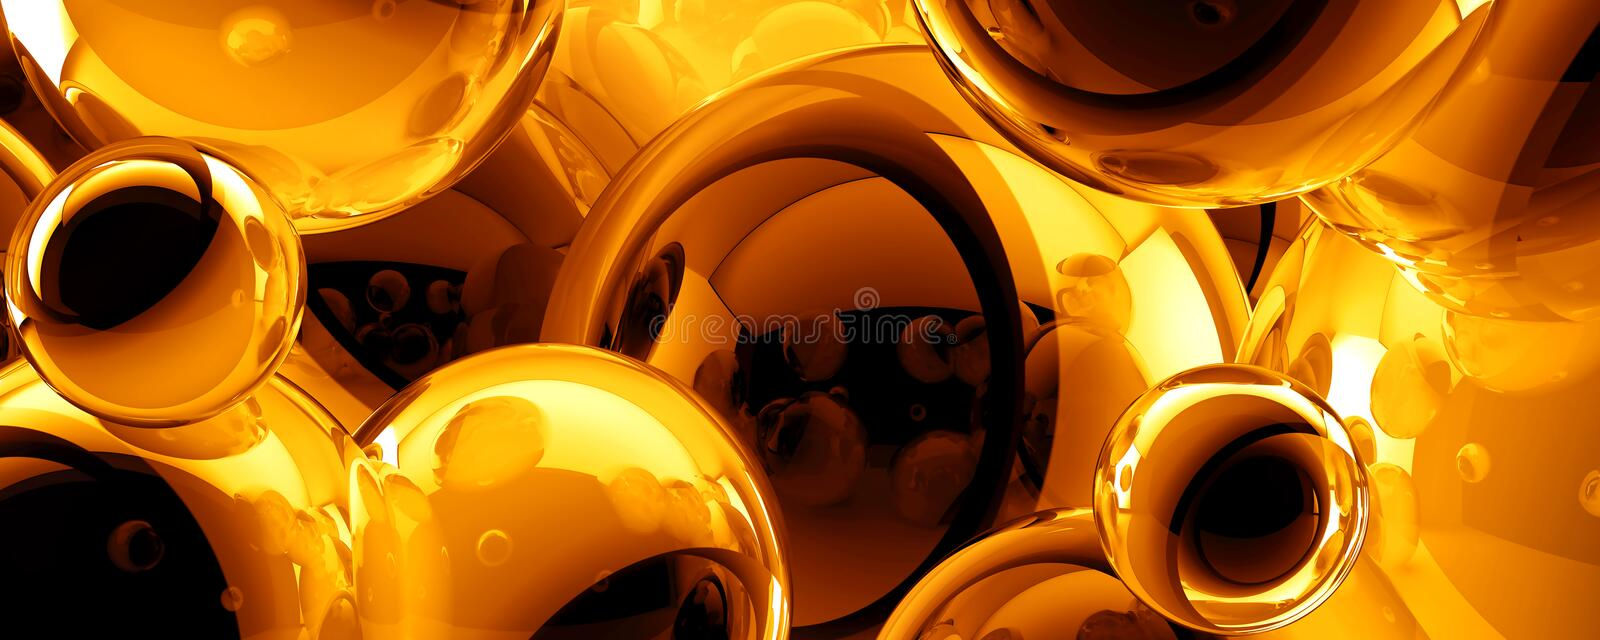 Abstract 3D balls background royalty free illustration